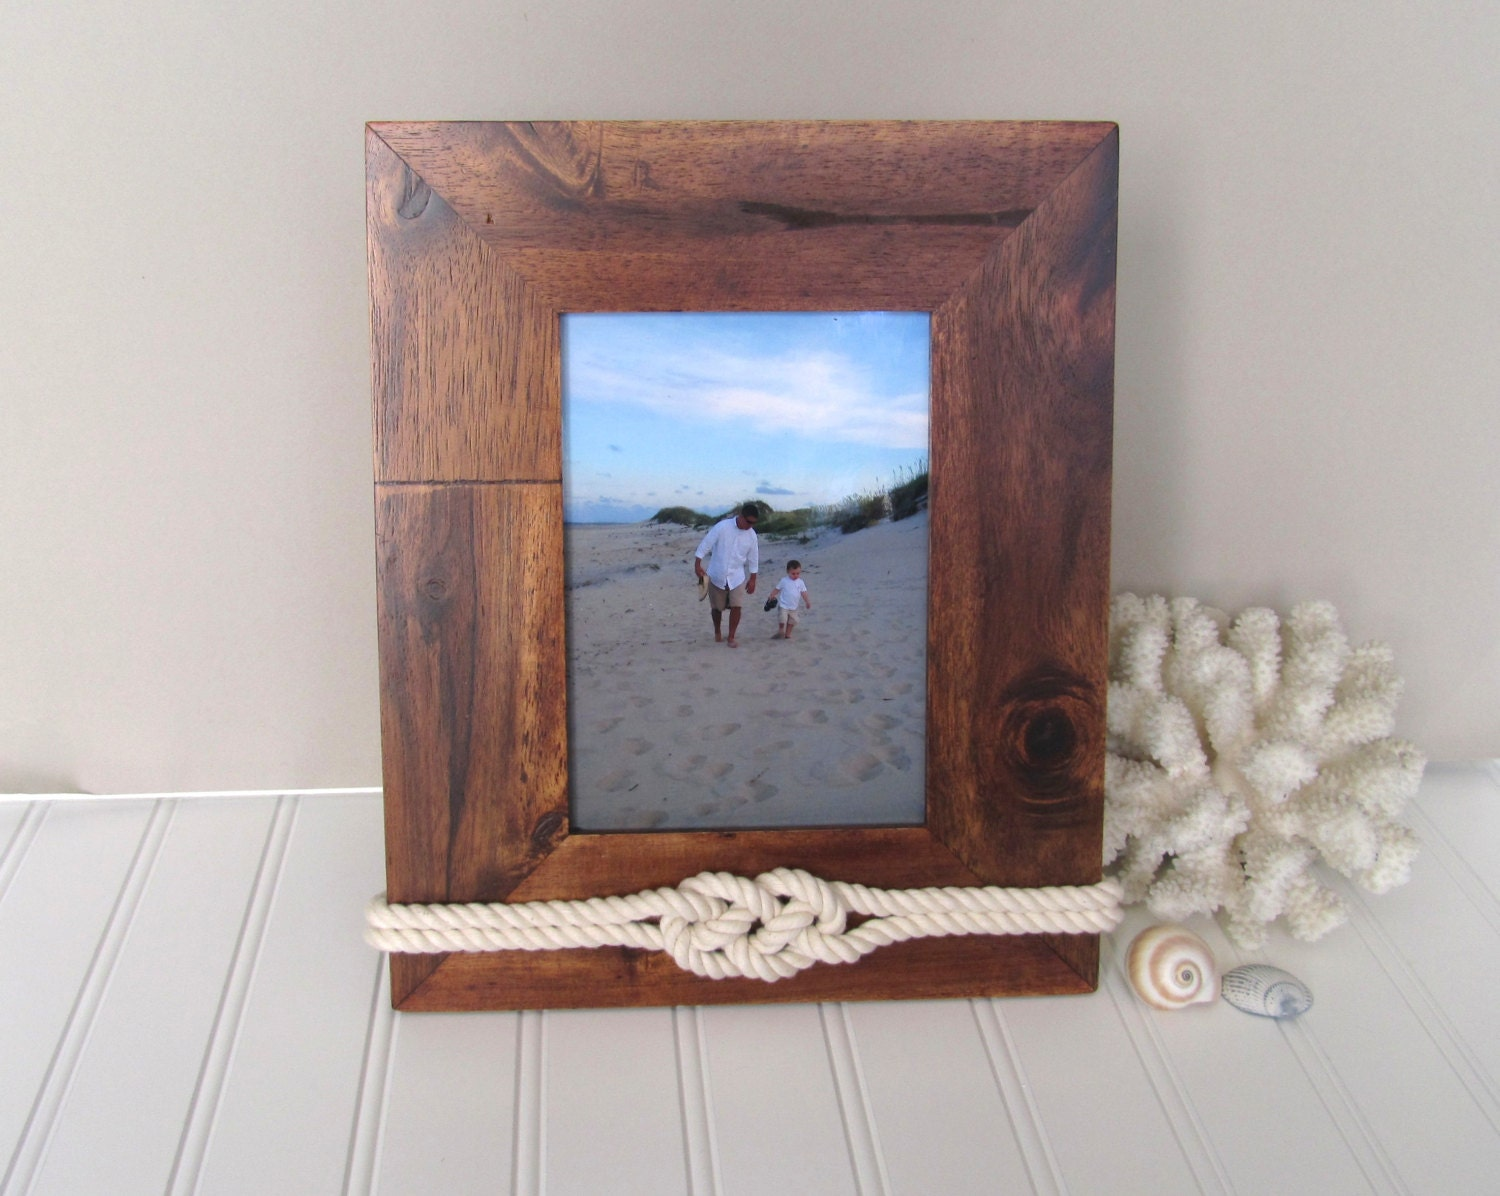 5x7 coastal wood picture frame nautical decor by goldengray. Black Bedroom Furniture Sets. Home Design Ideas